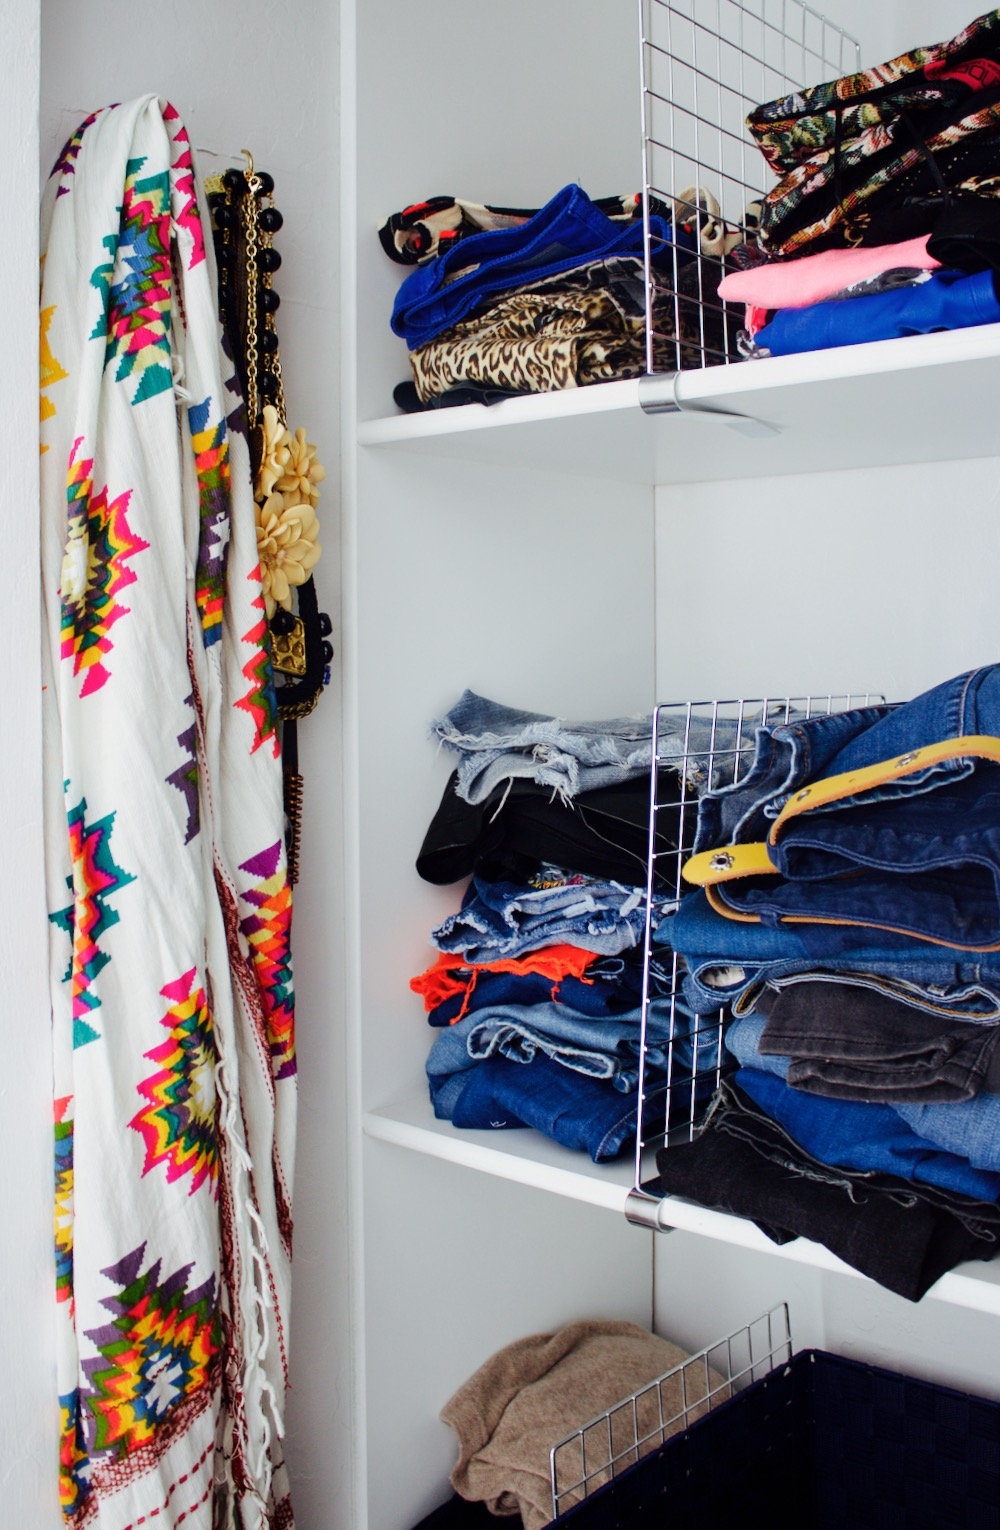 Simple closet organizers add tons of extra storage space